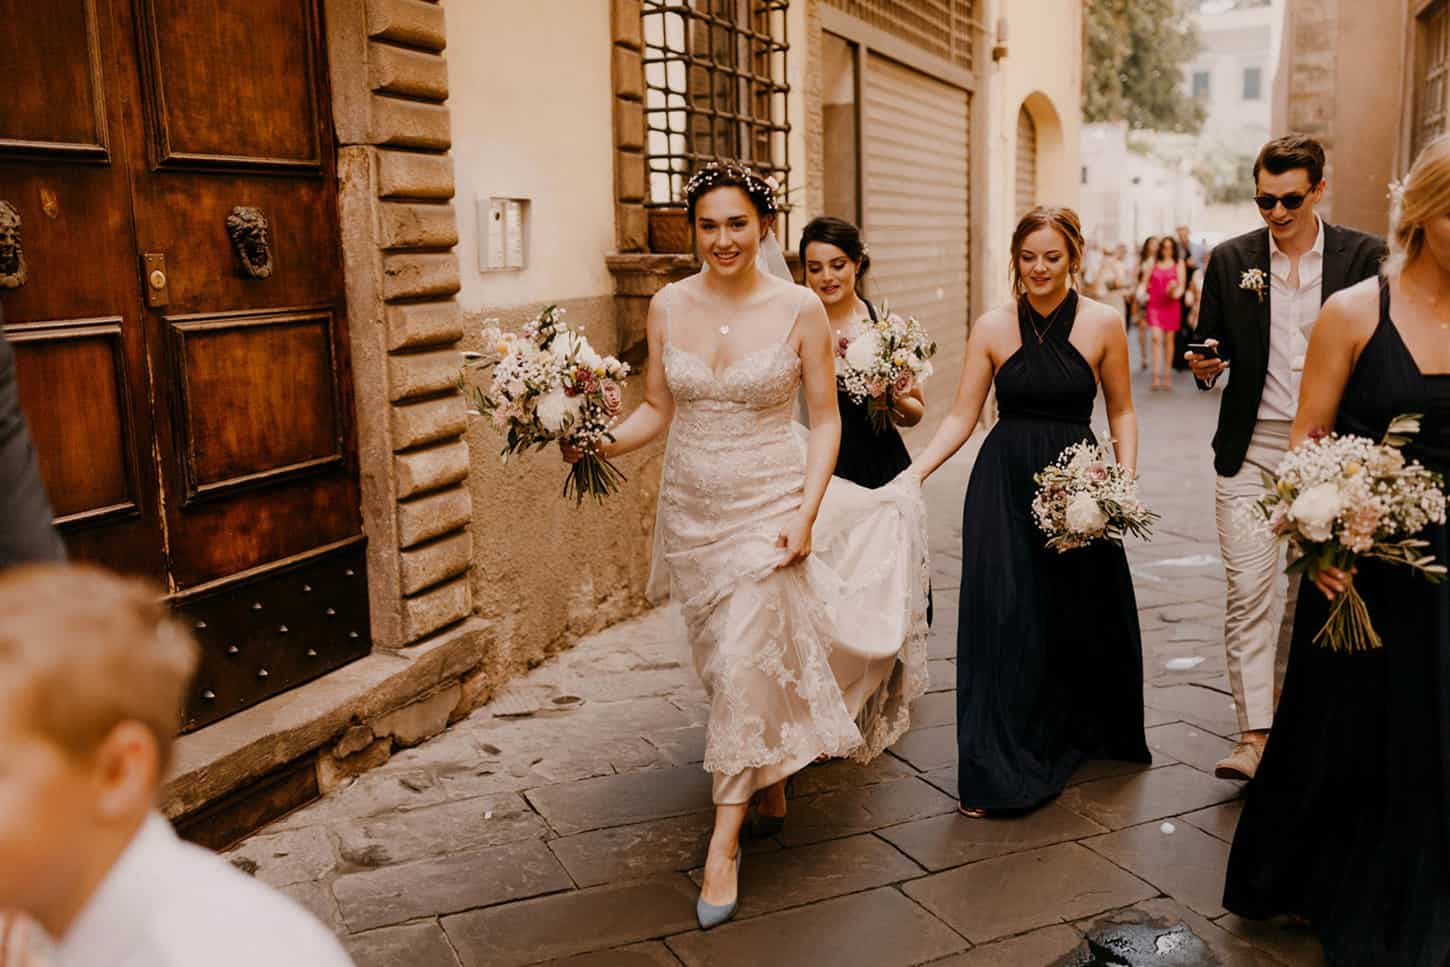 083-kieran-laura-italy-lucca-destination-wedding